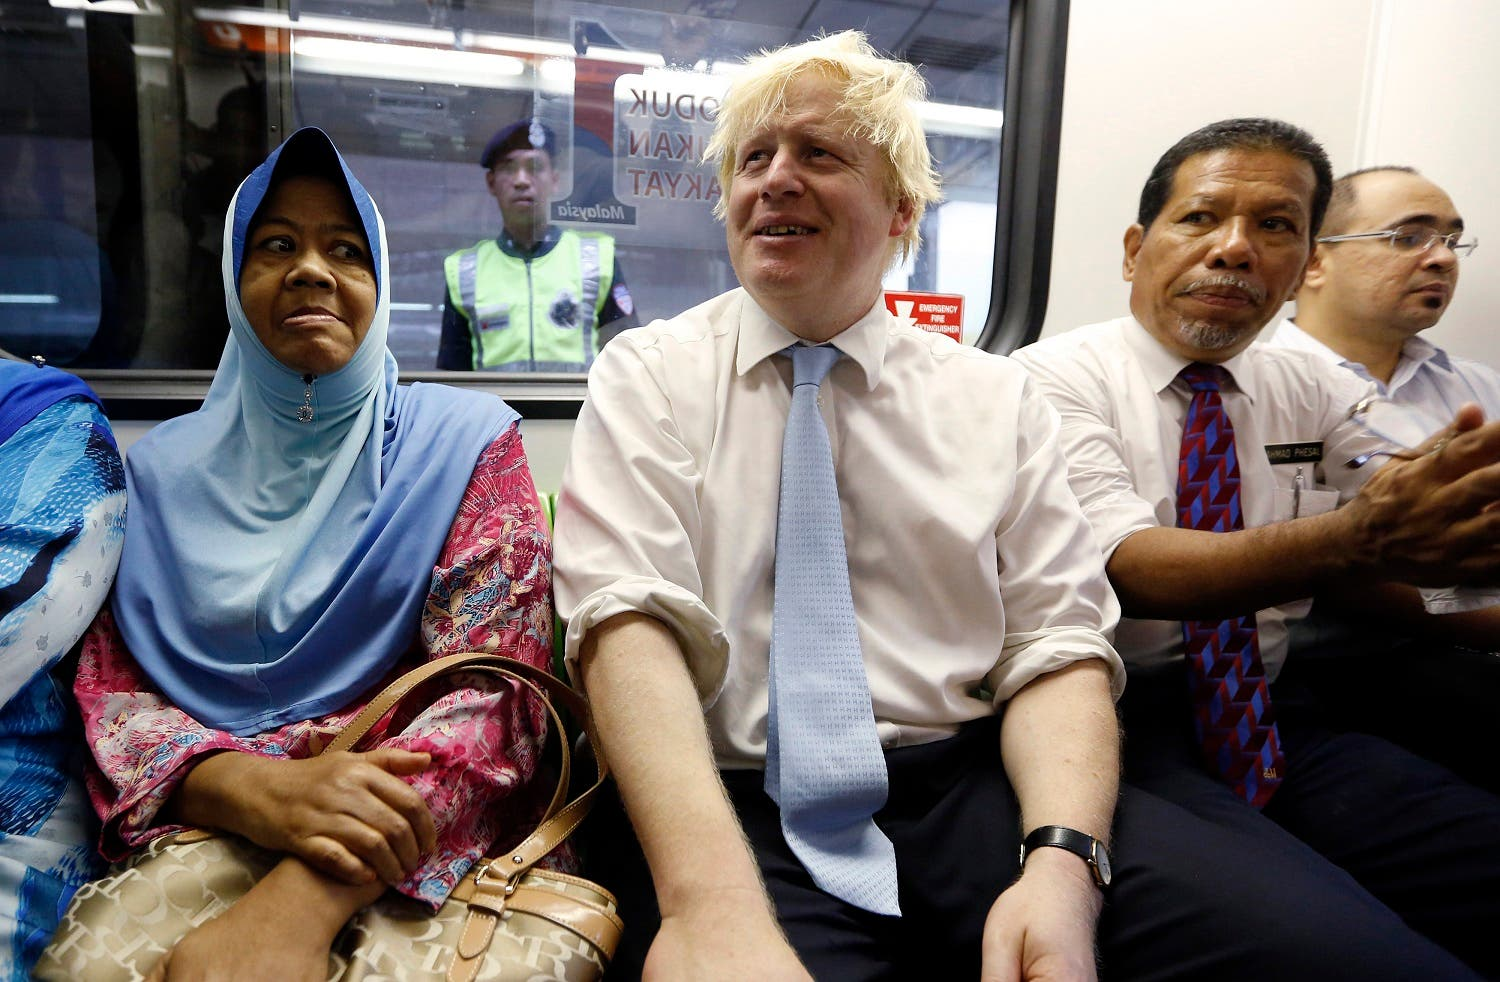 London's Mayor Boris Johnson rides on the monorail during an official visit to Kuala Lumpur. (File photo: Reuters)